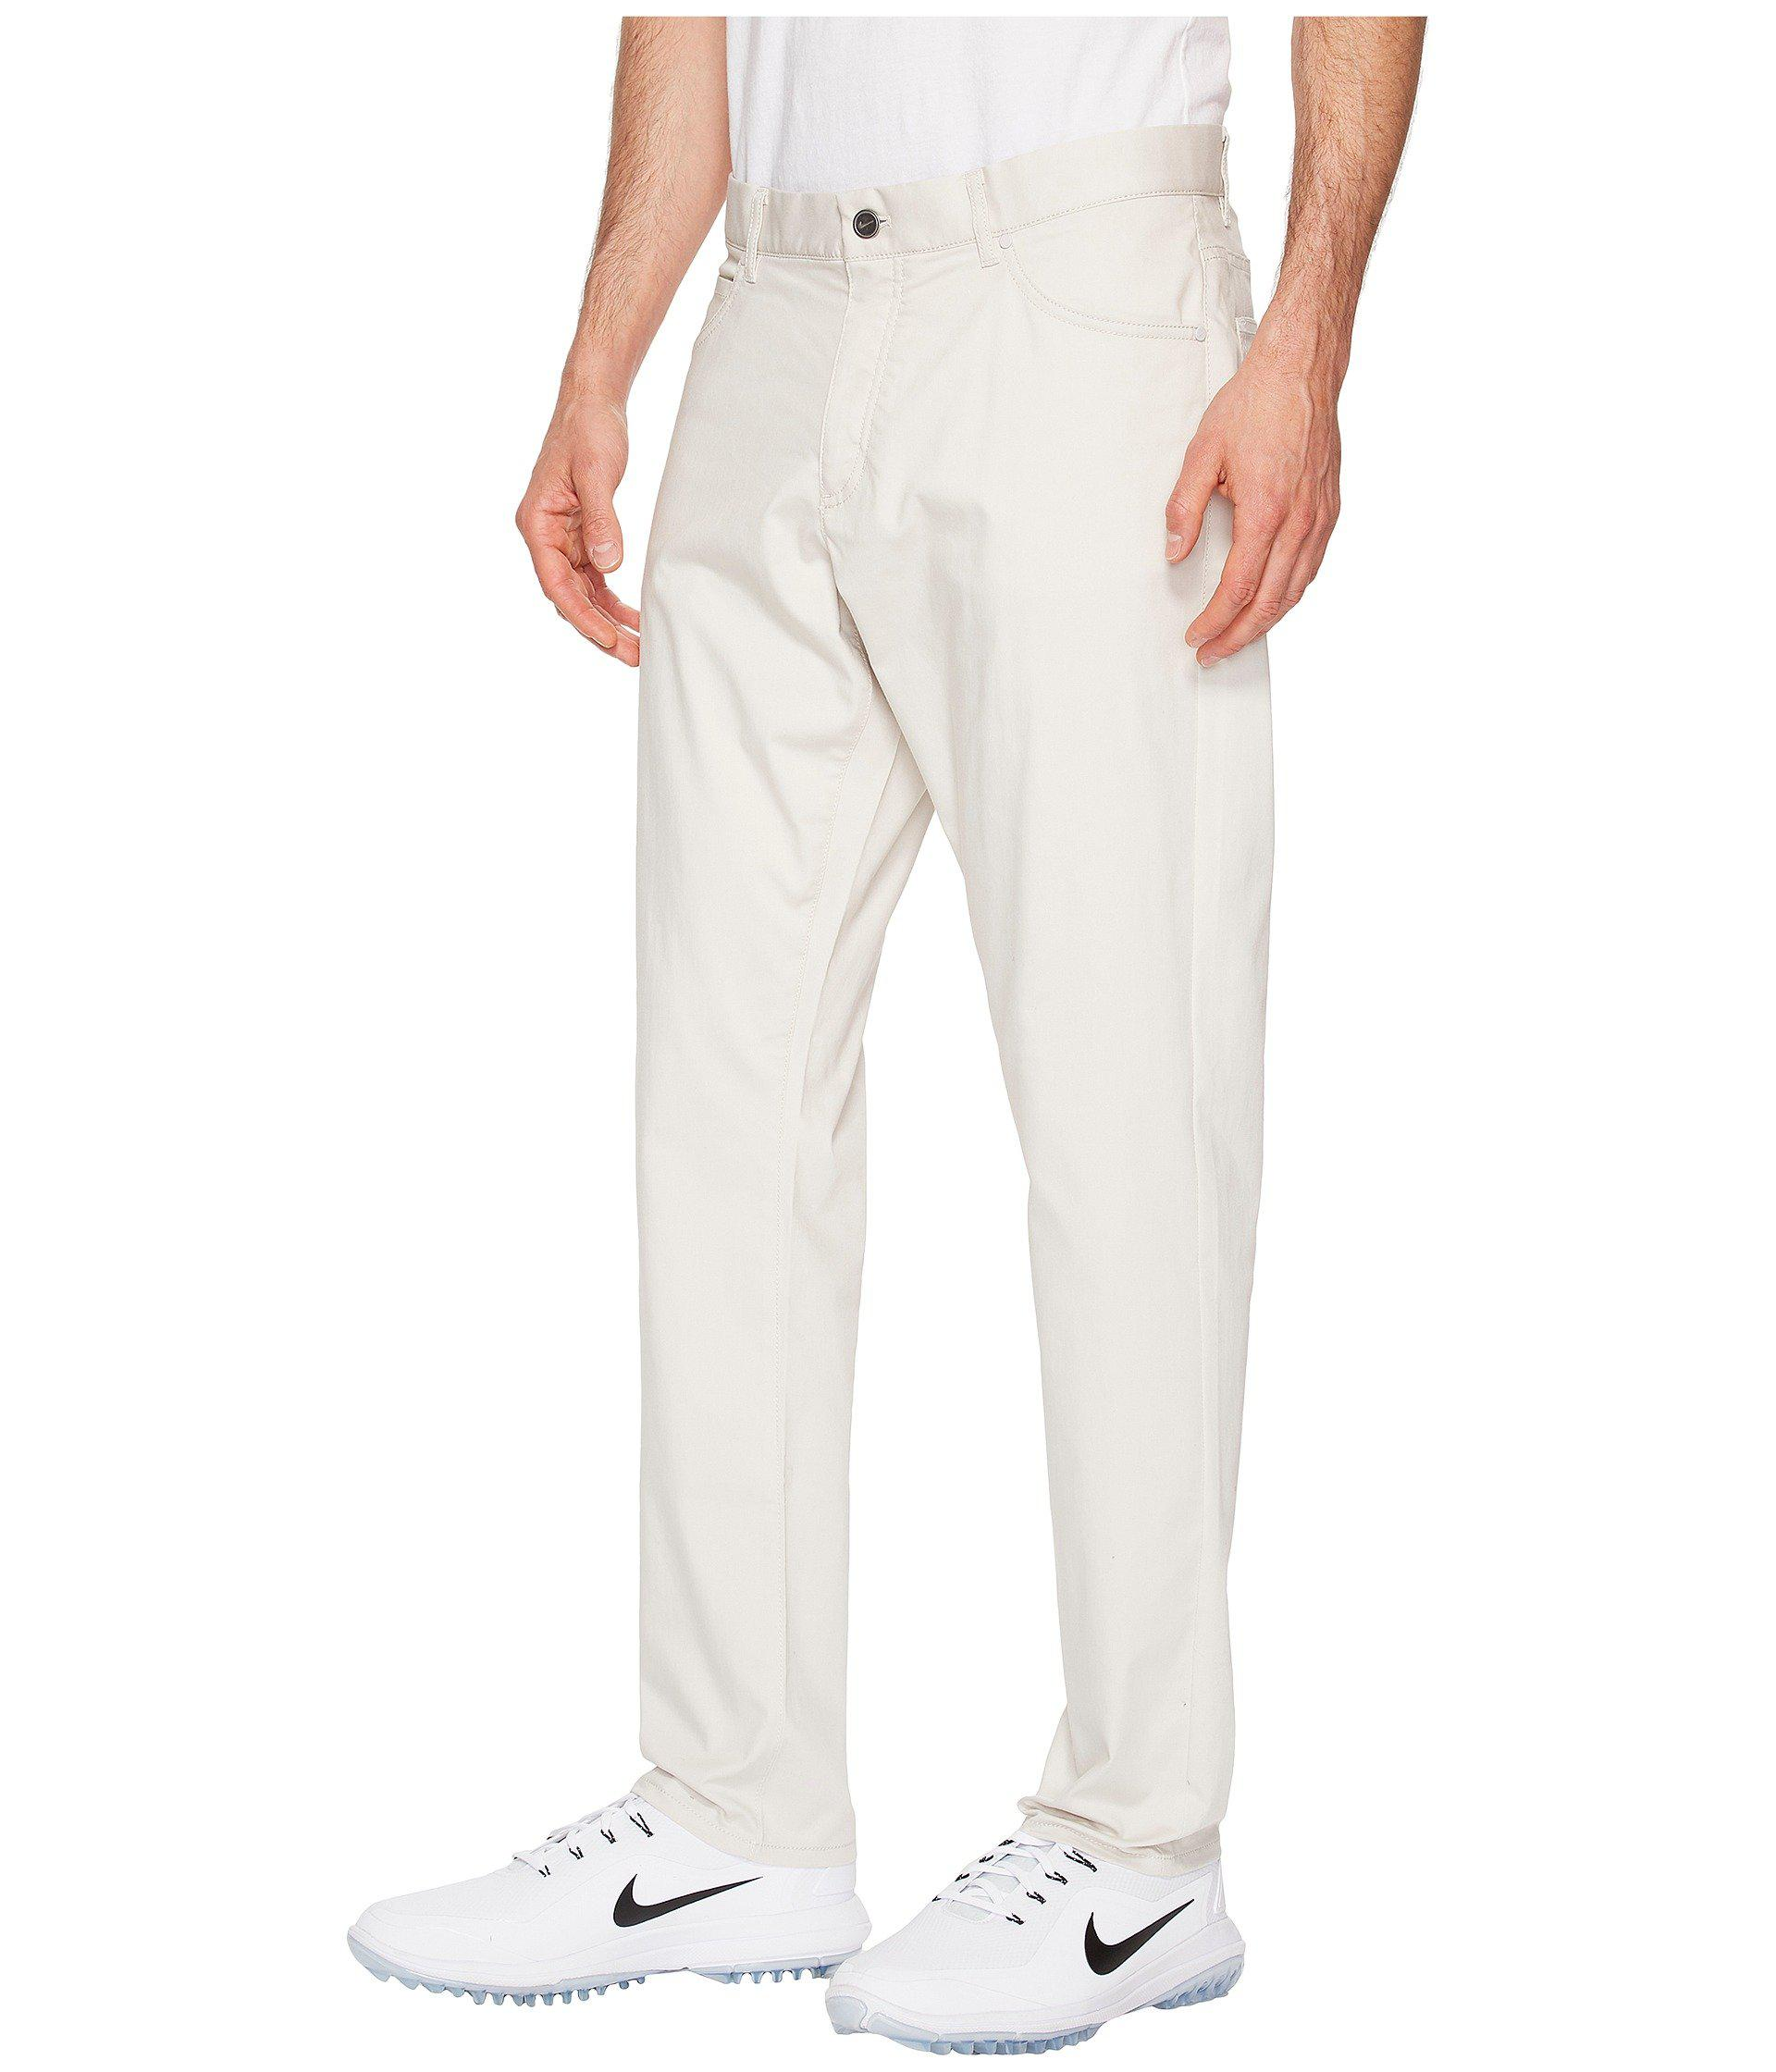 35e3a6b00fc5 Lyst - Nike Flex Five-pocket Pants in White for Men - Save 22%